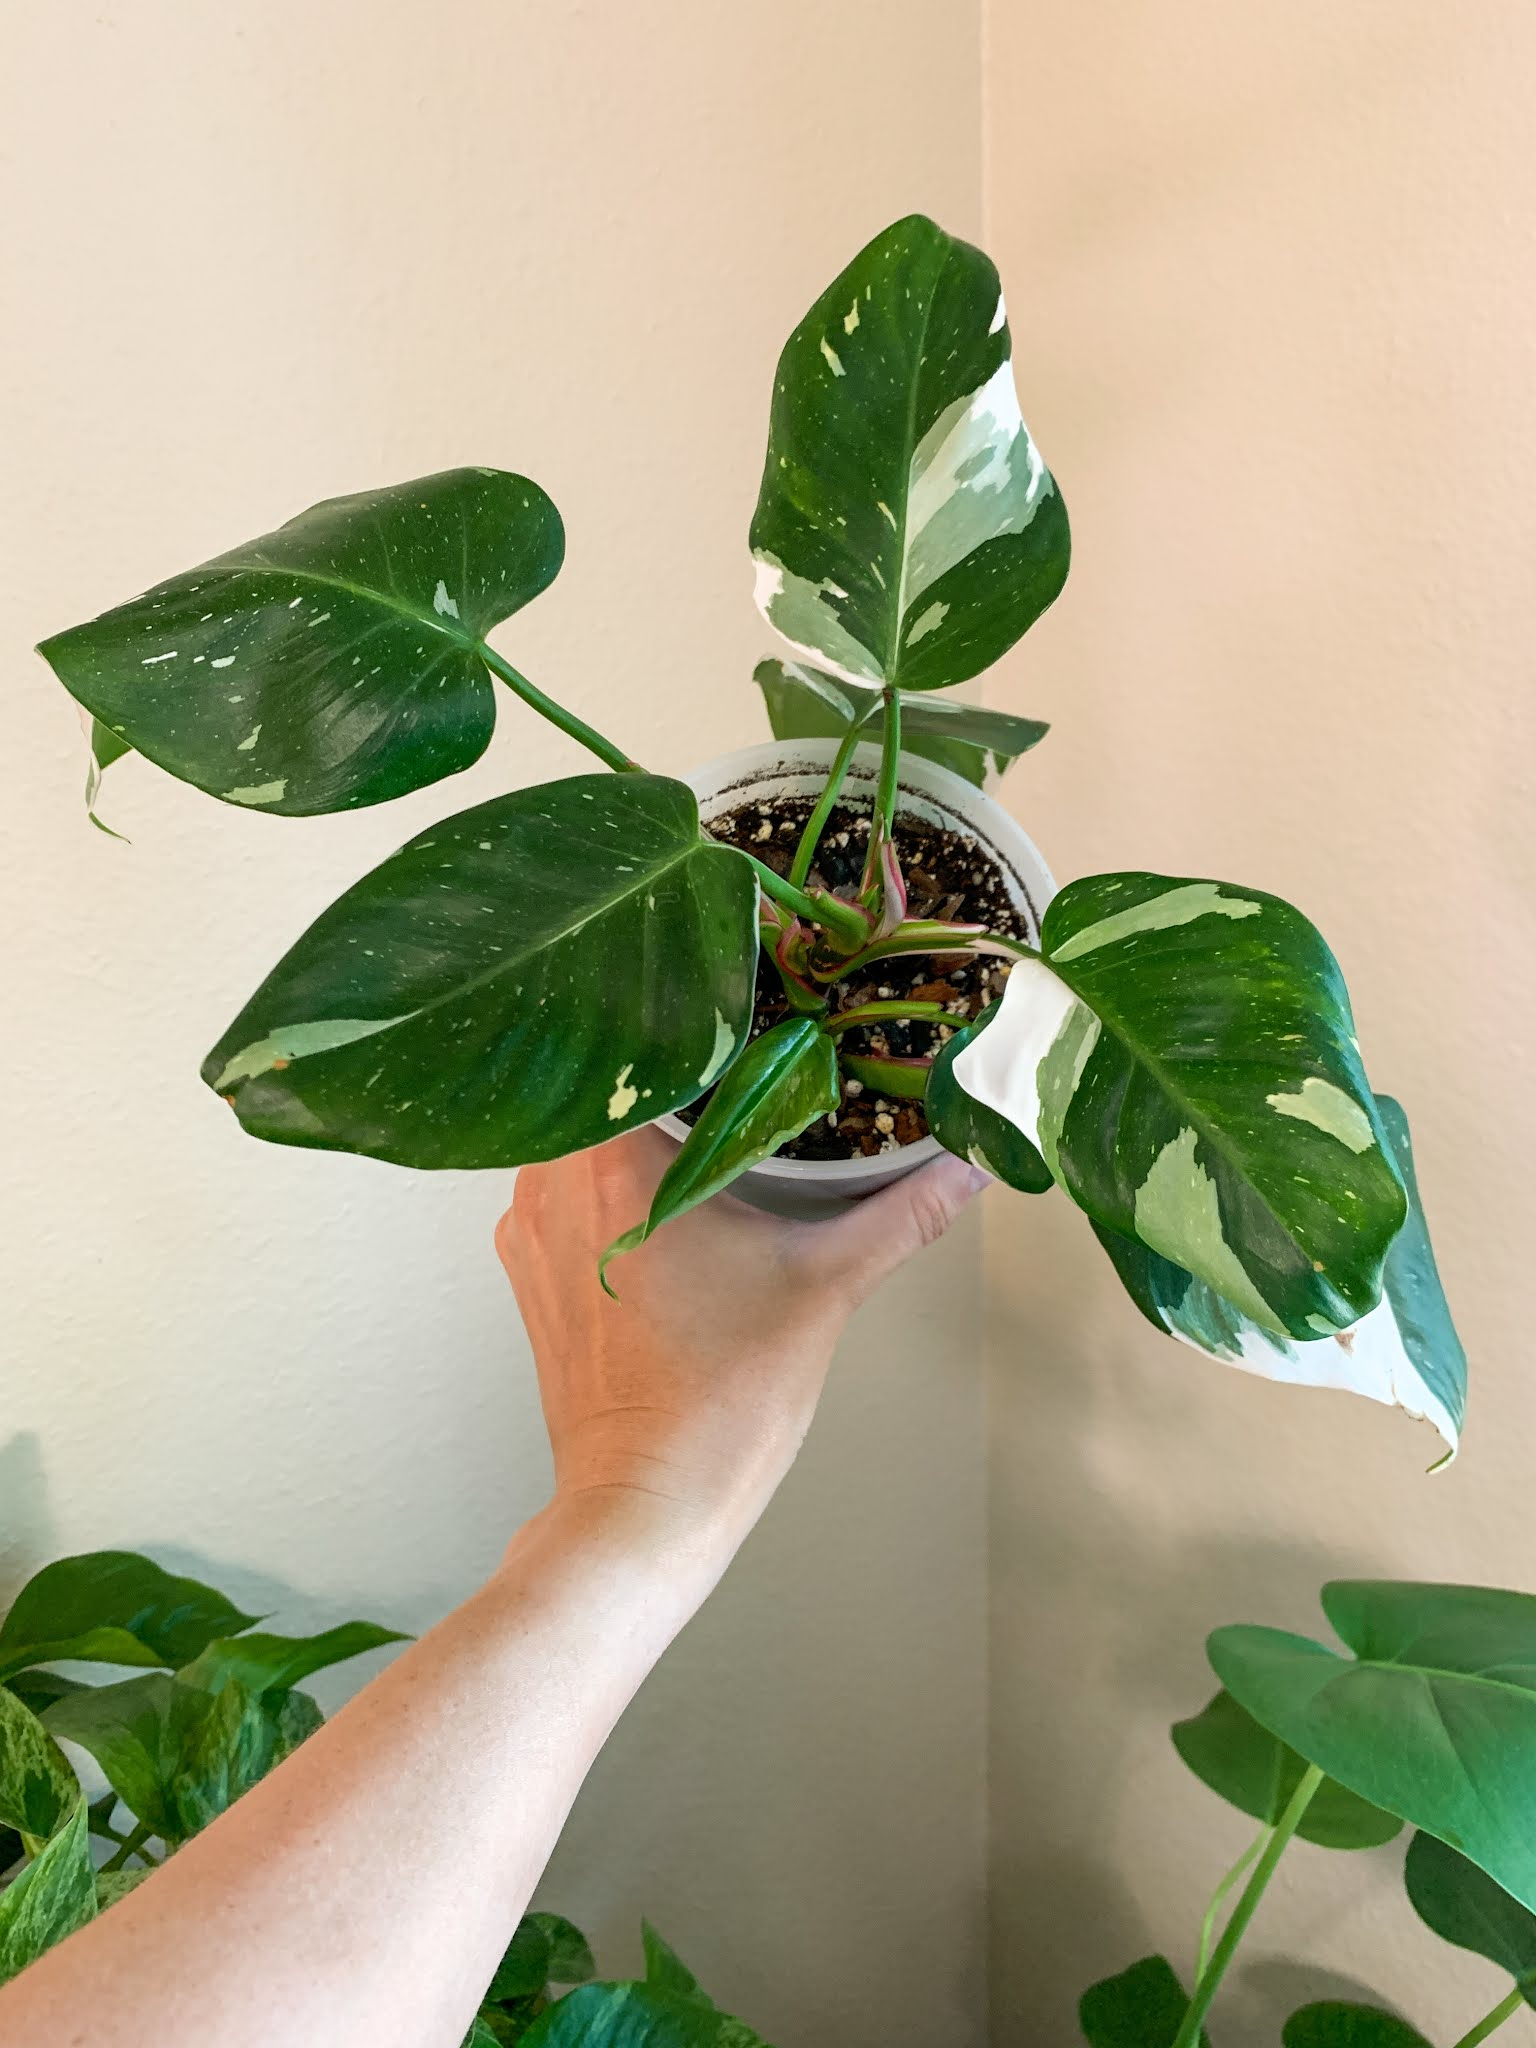 Me holding up my Philodendron White Princess to show the splashy white variegation